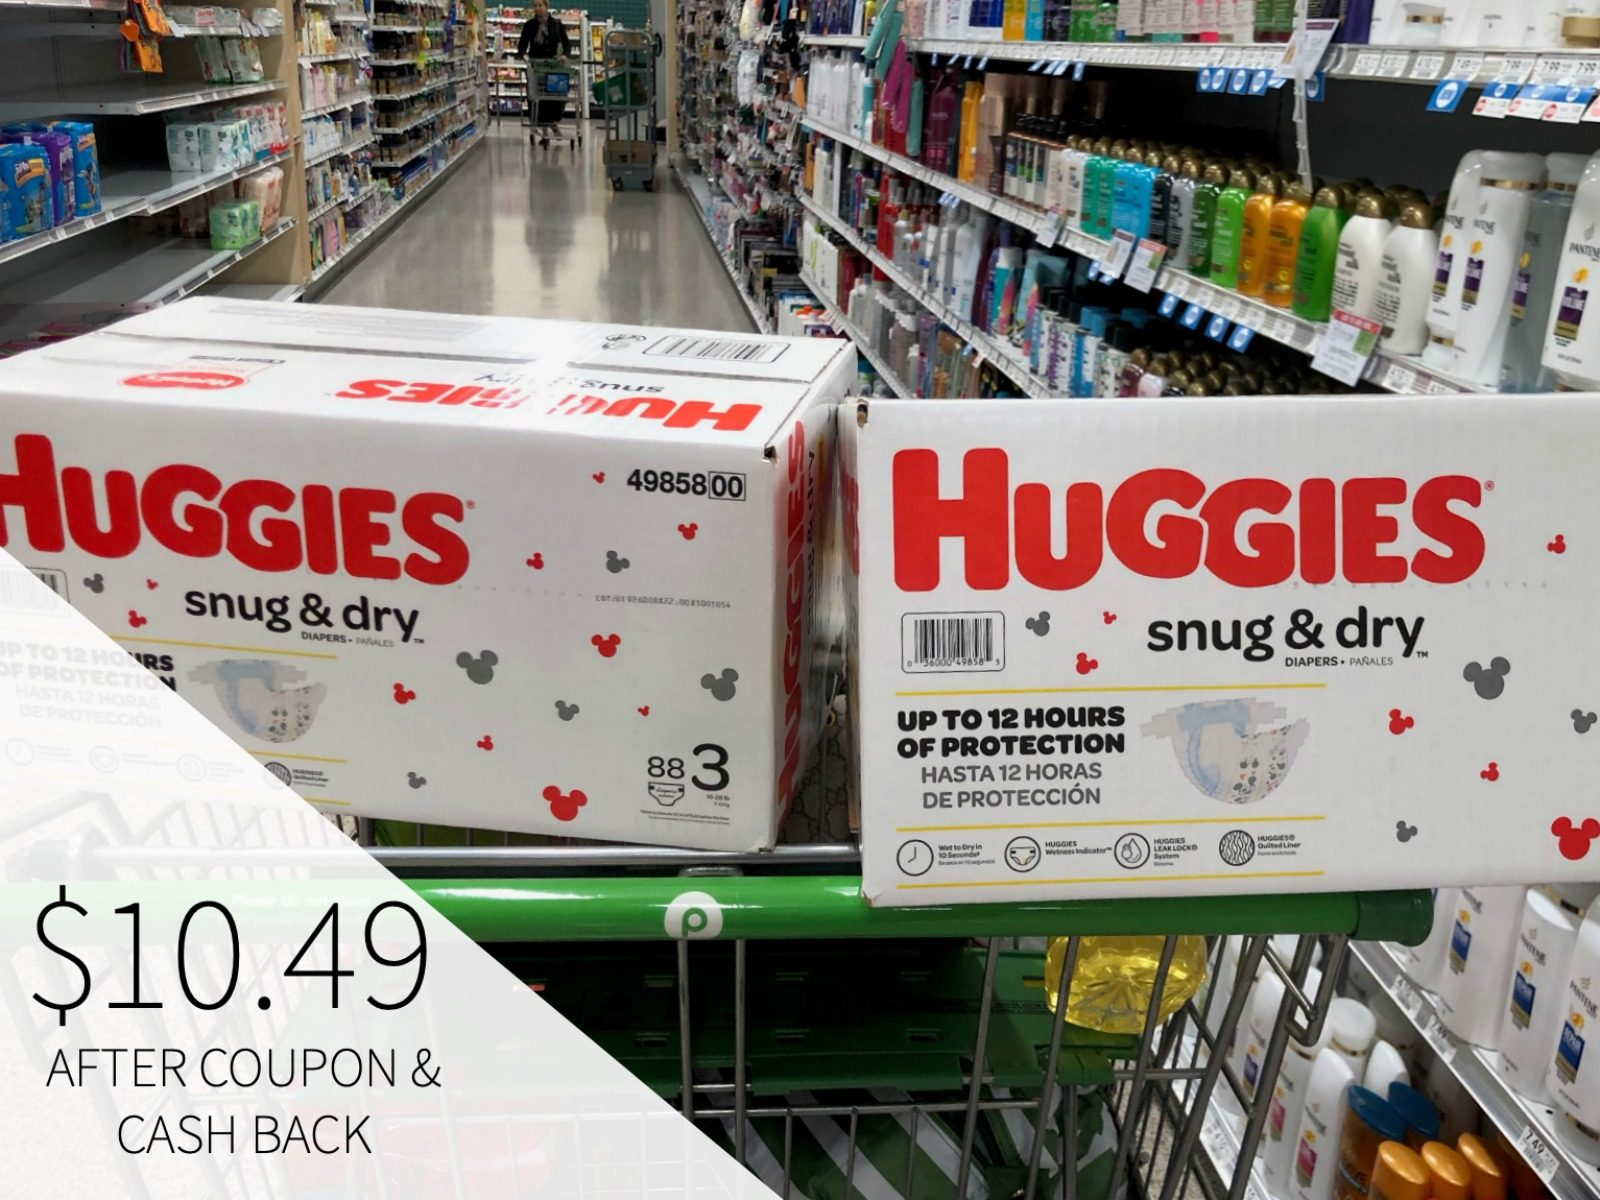 Huggies Boxed Diapers Just $10.49 At Publix (Save $8!!) on I Heart Publix